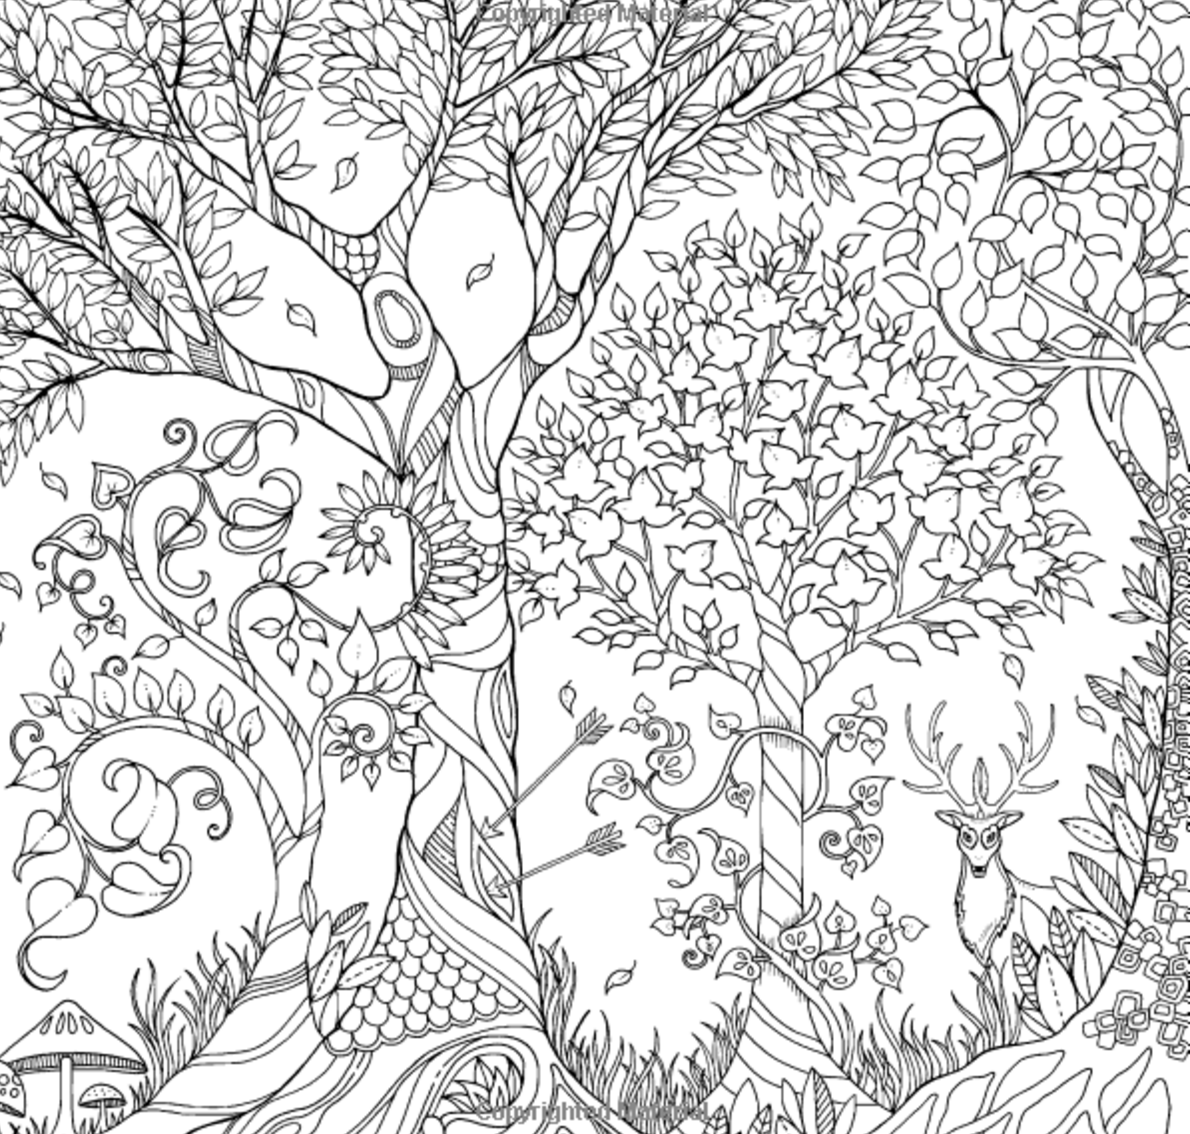 awesome coloring pages awesome owls coloring book by fox chapel publishing awesome coloring pages